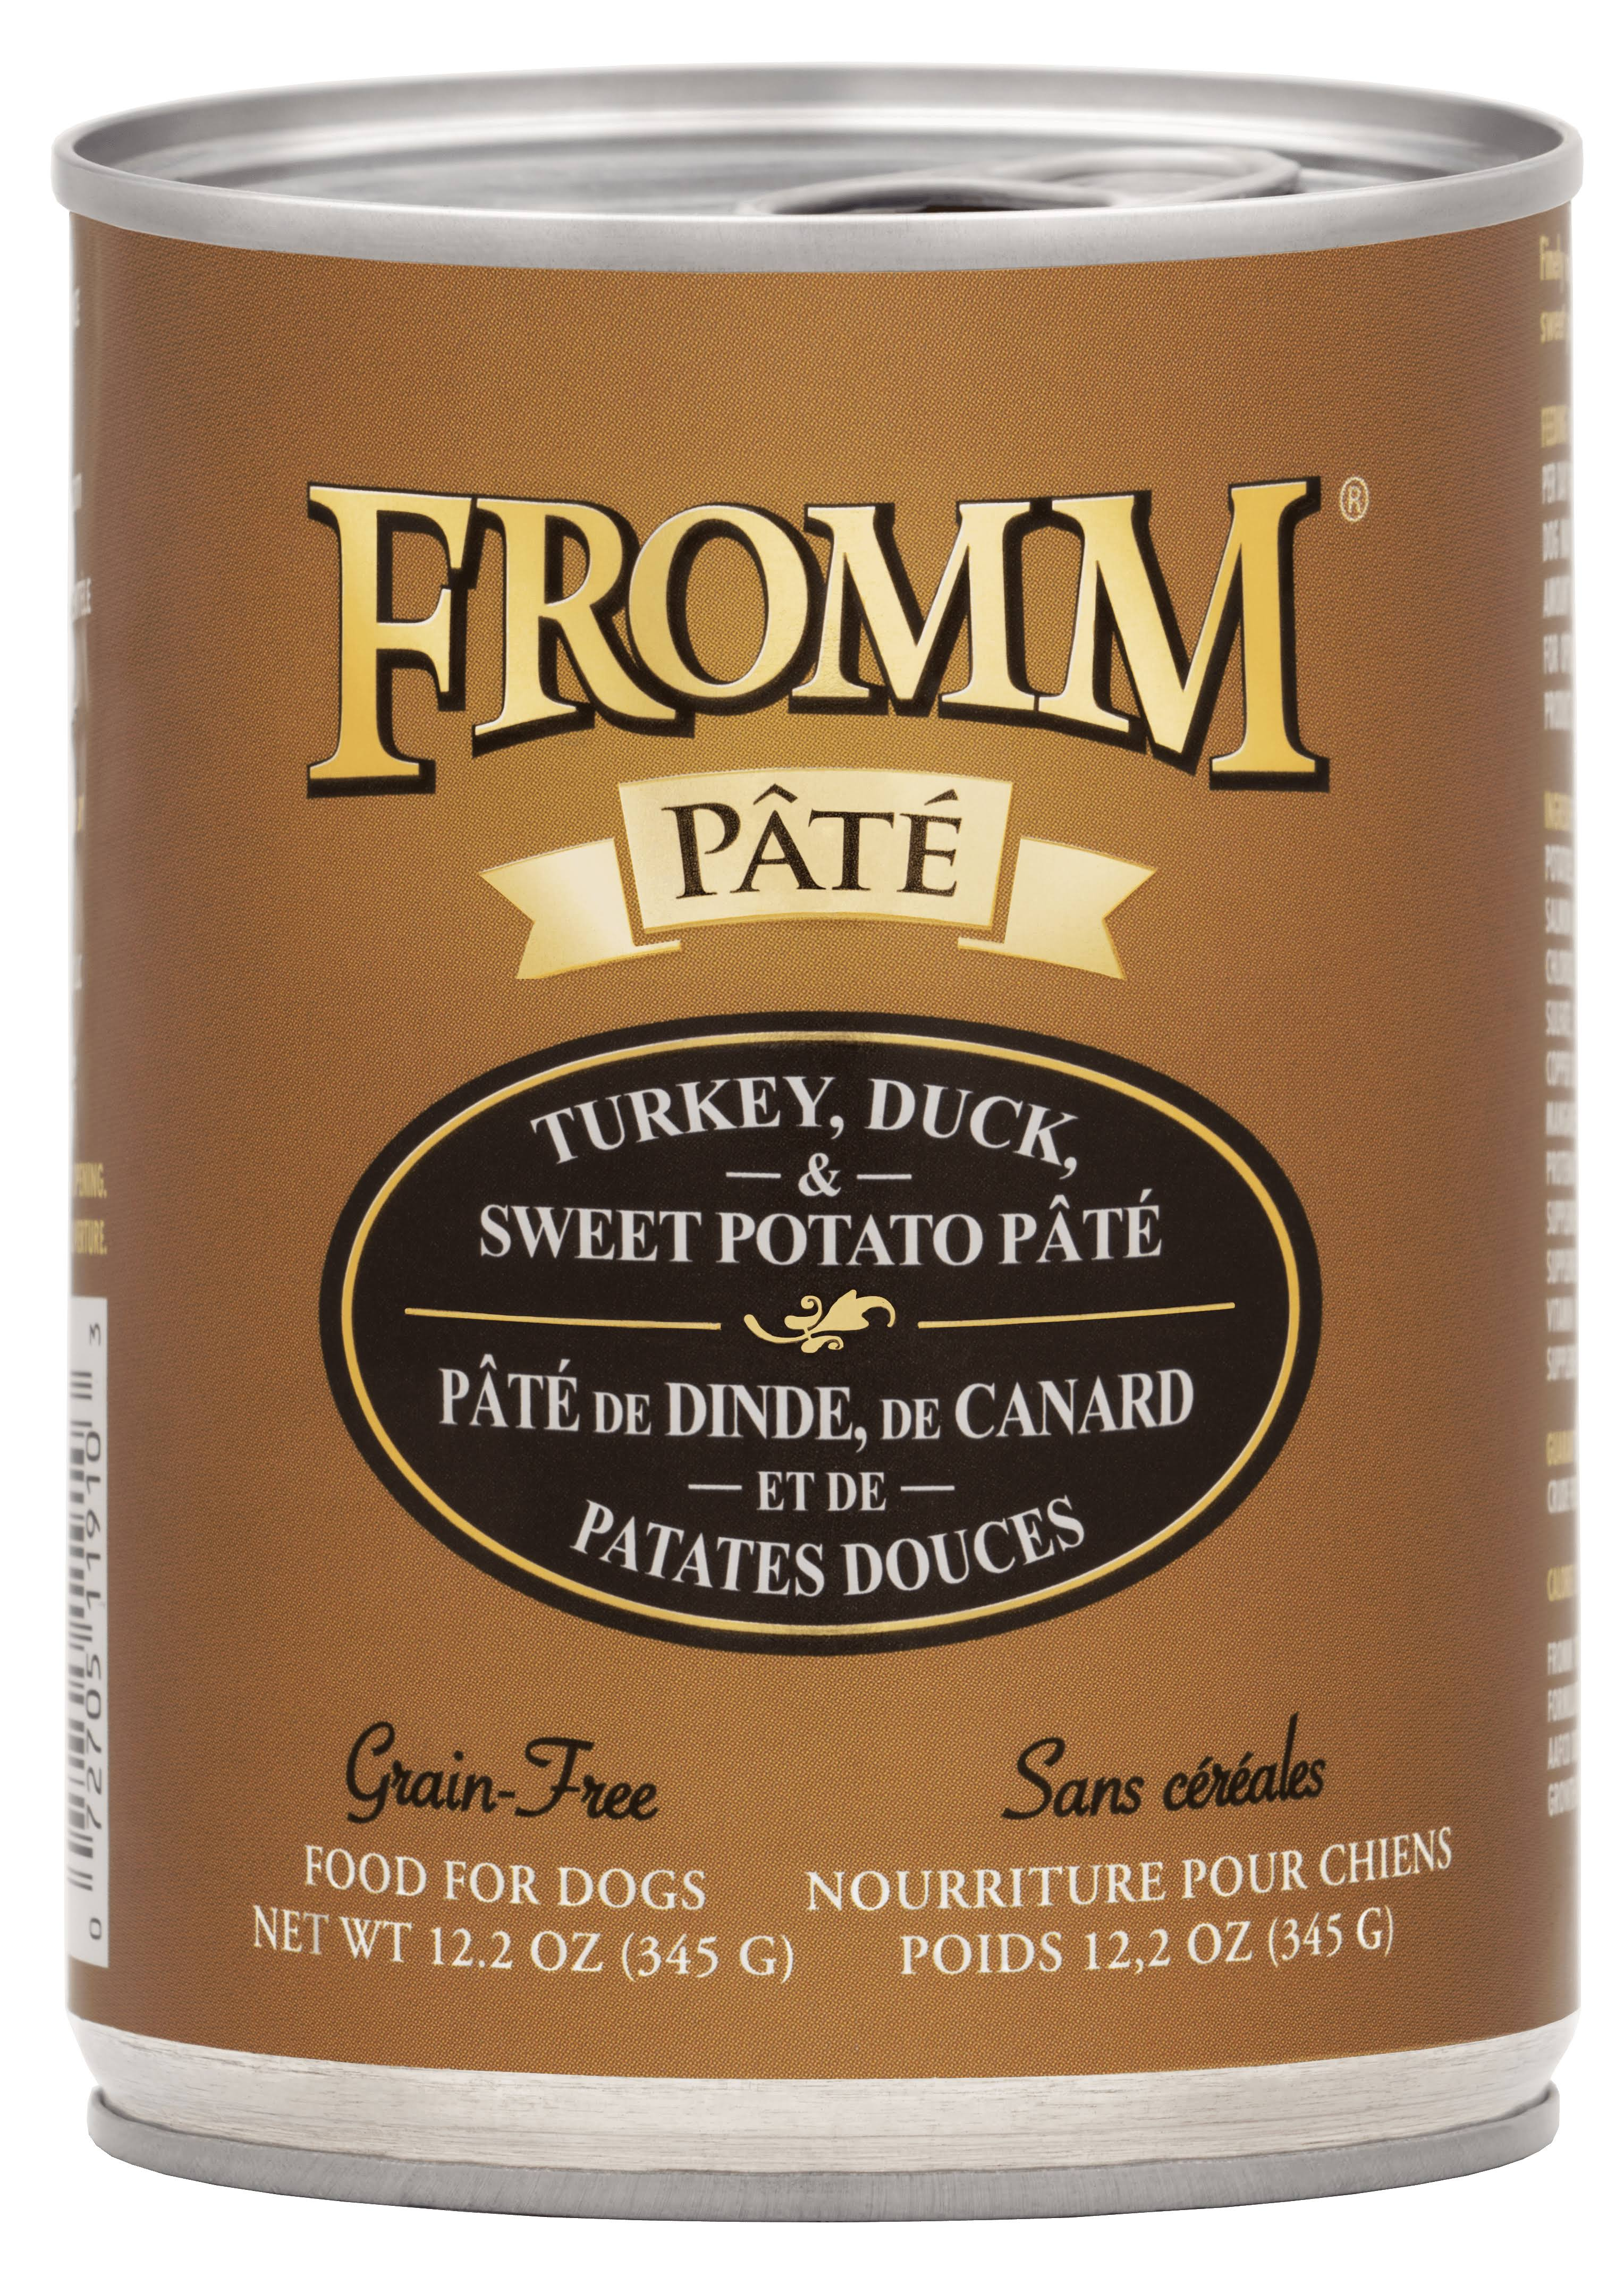 Fromm Turkey, Duck & Sweet Potato Pate Canned Dog Food 12.2 oz